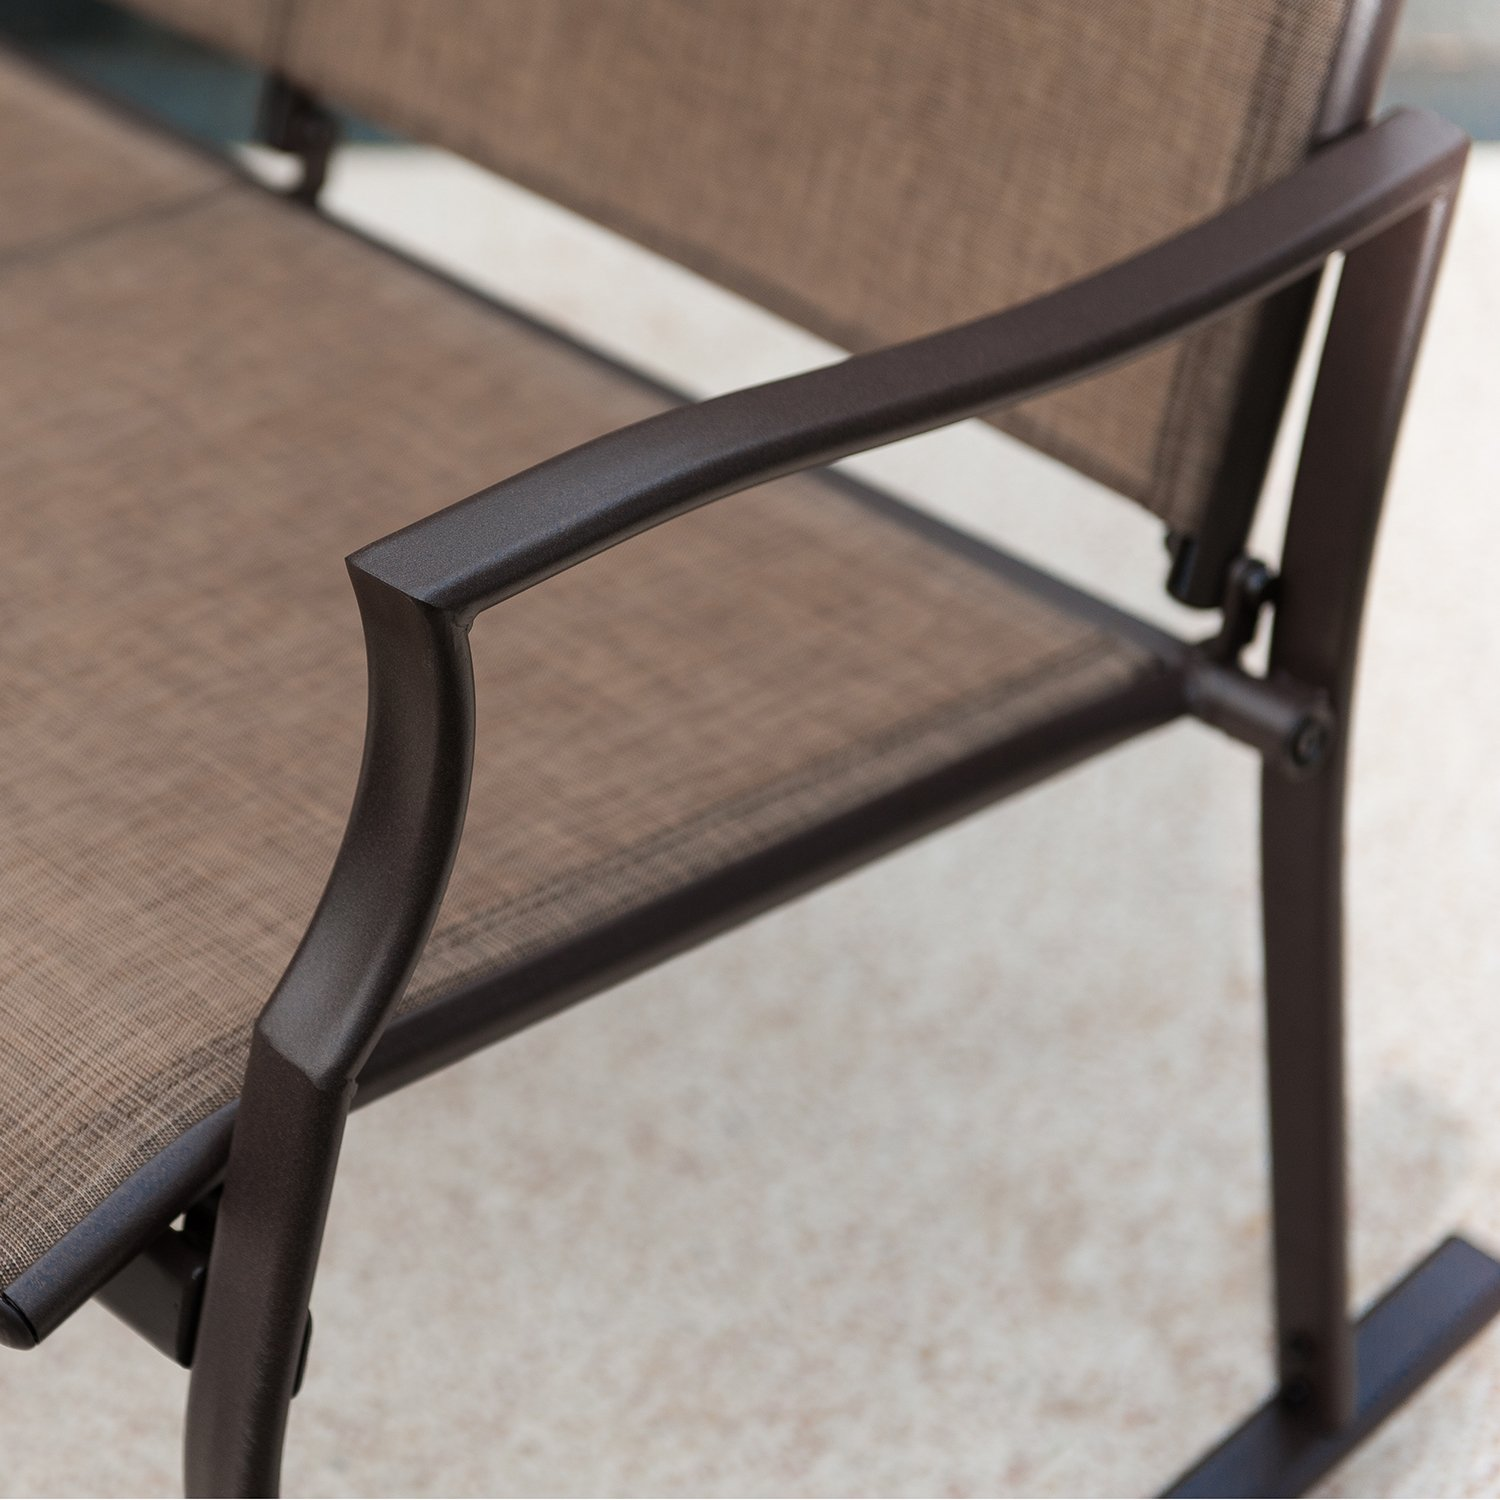 Patio Loveseat Bench, Glider Swing Rocking Chair with Steel Frame for 2 Persons by SLN (Image #5)